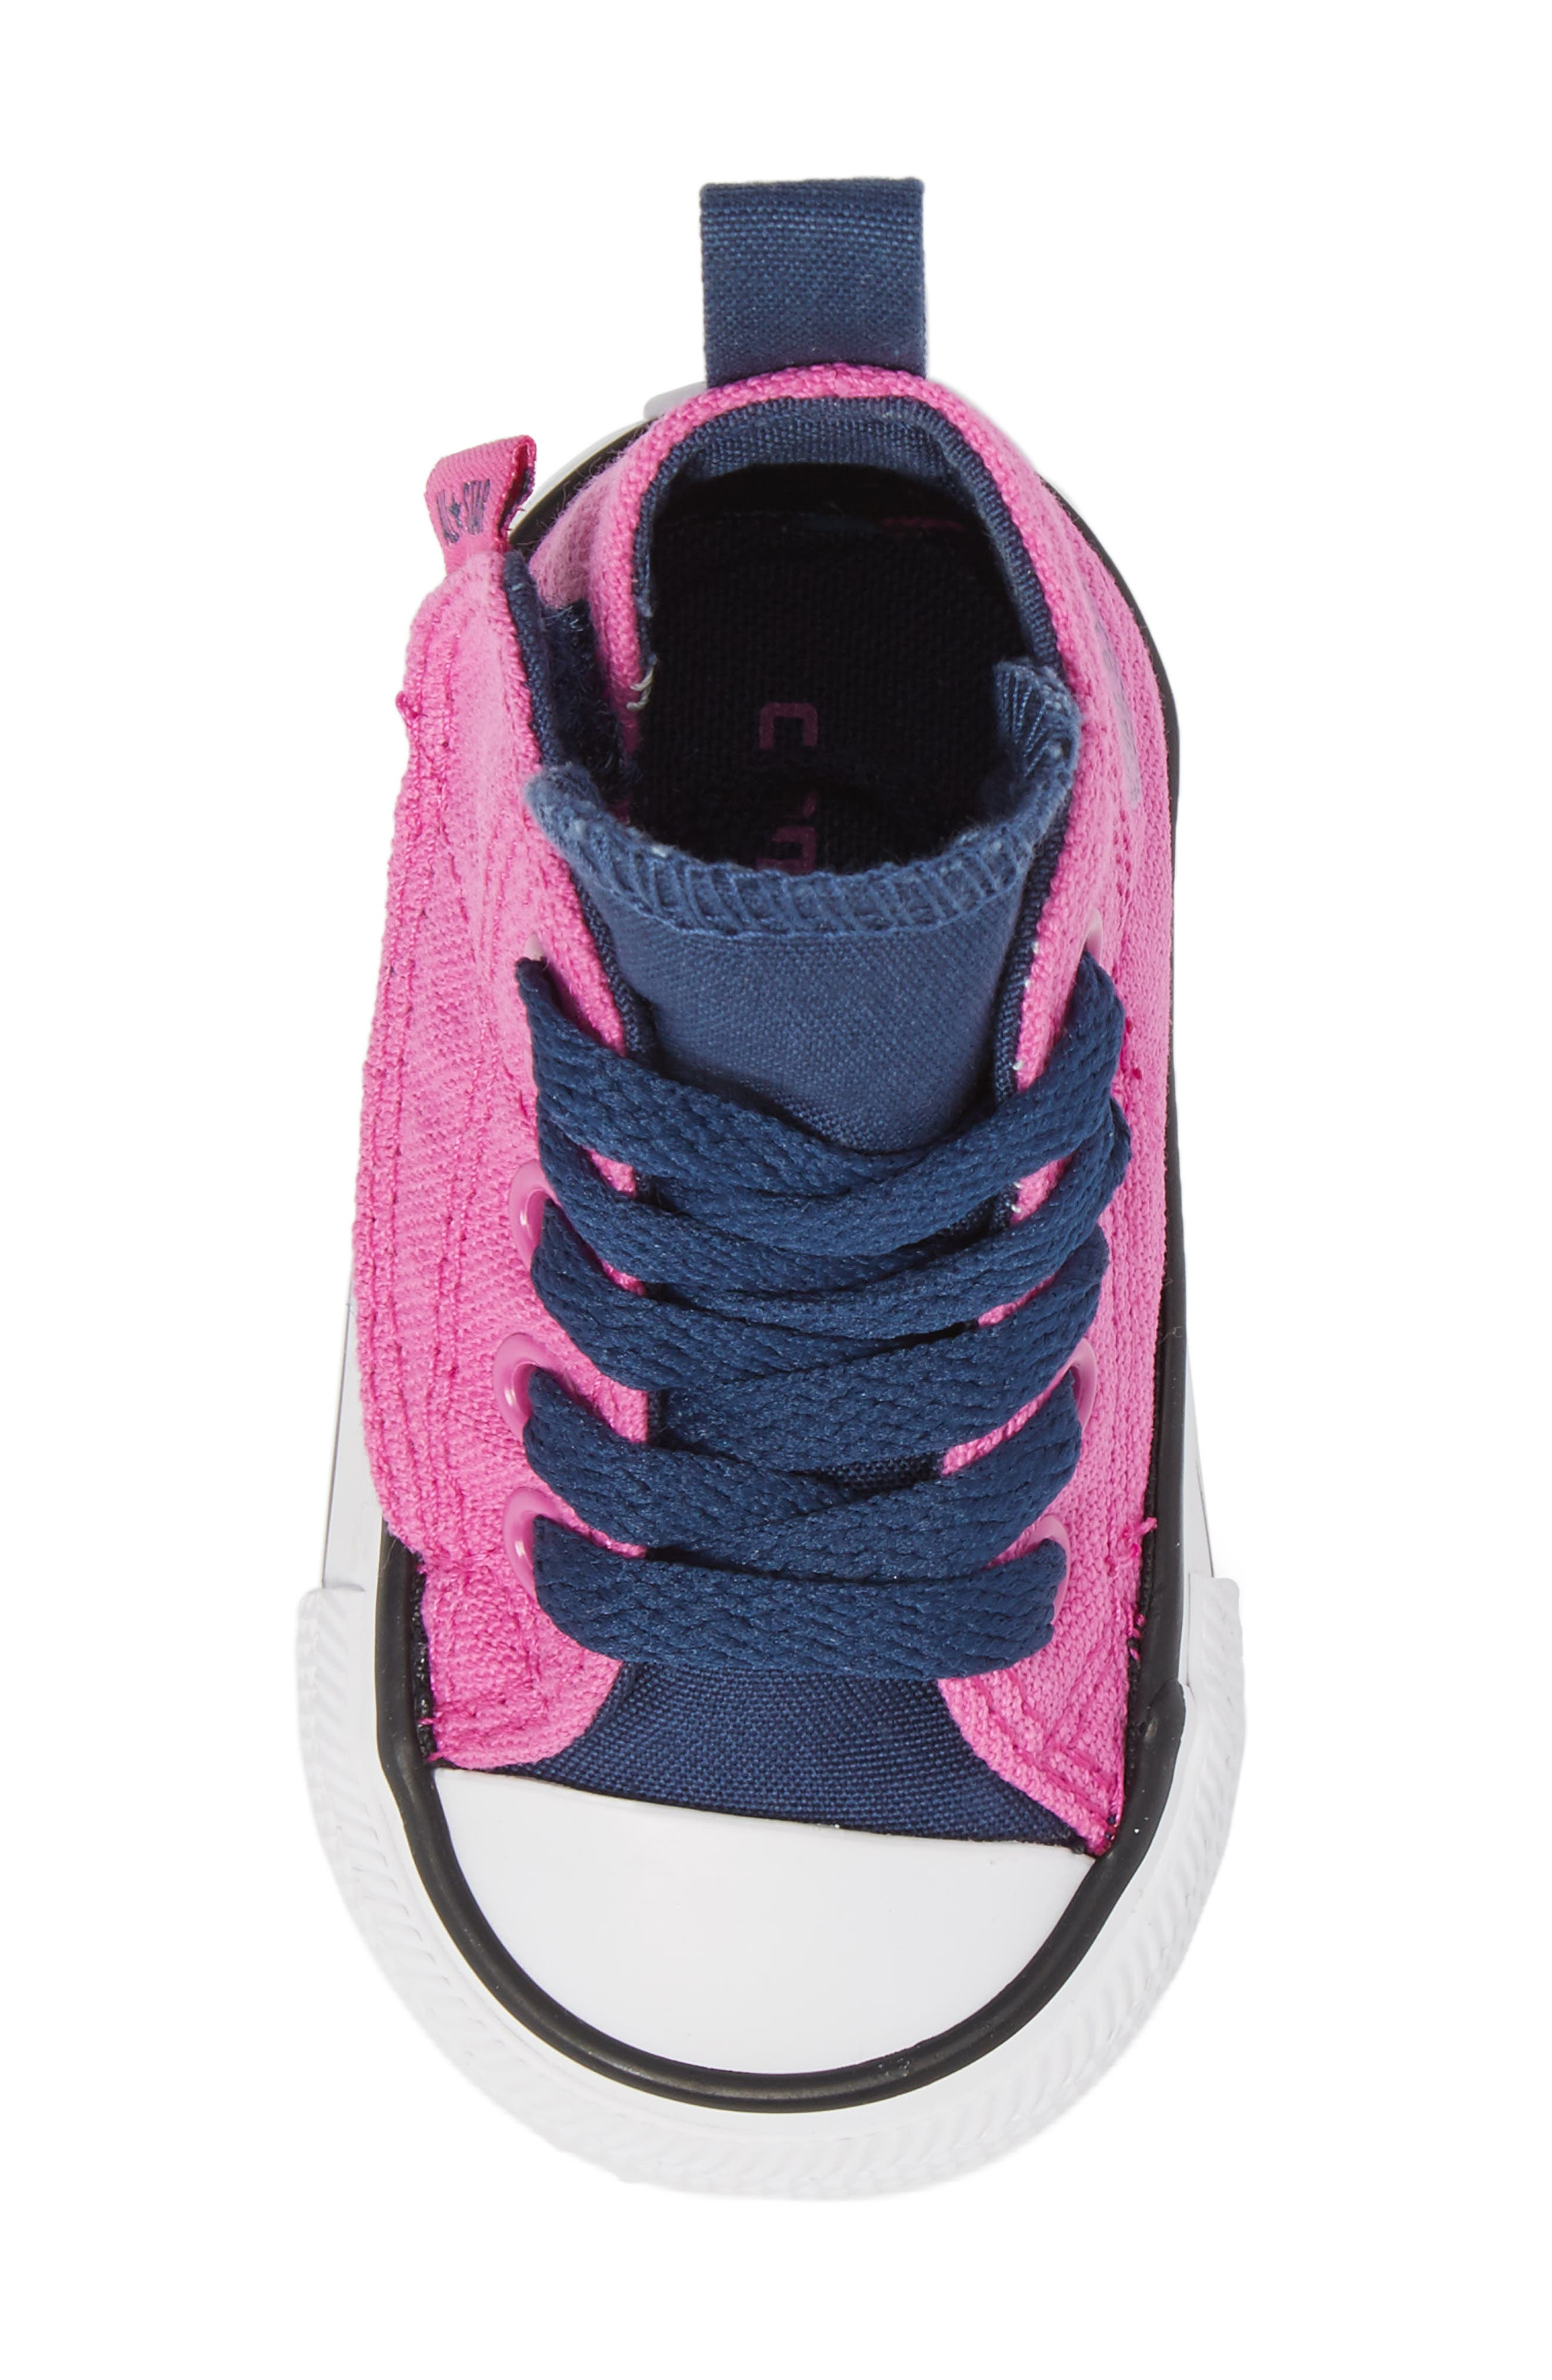 Chuck Taylor<sup>®</sup> All Star<sup>®</sup> 'Simple Step' High Top Sneaker,                             Alternate thumbnail 18, color,